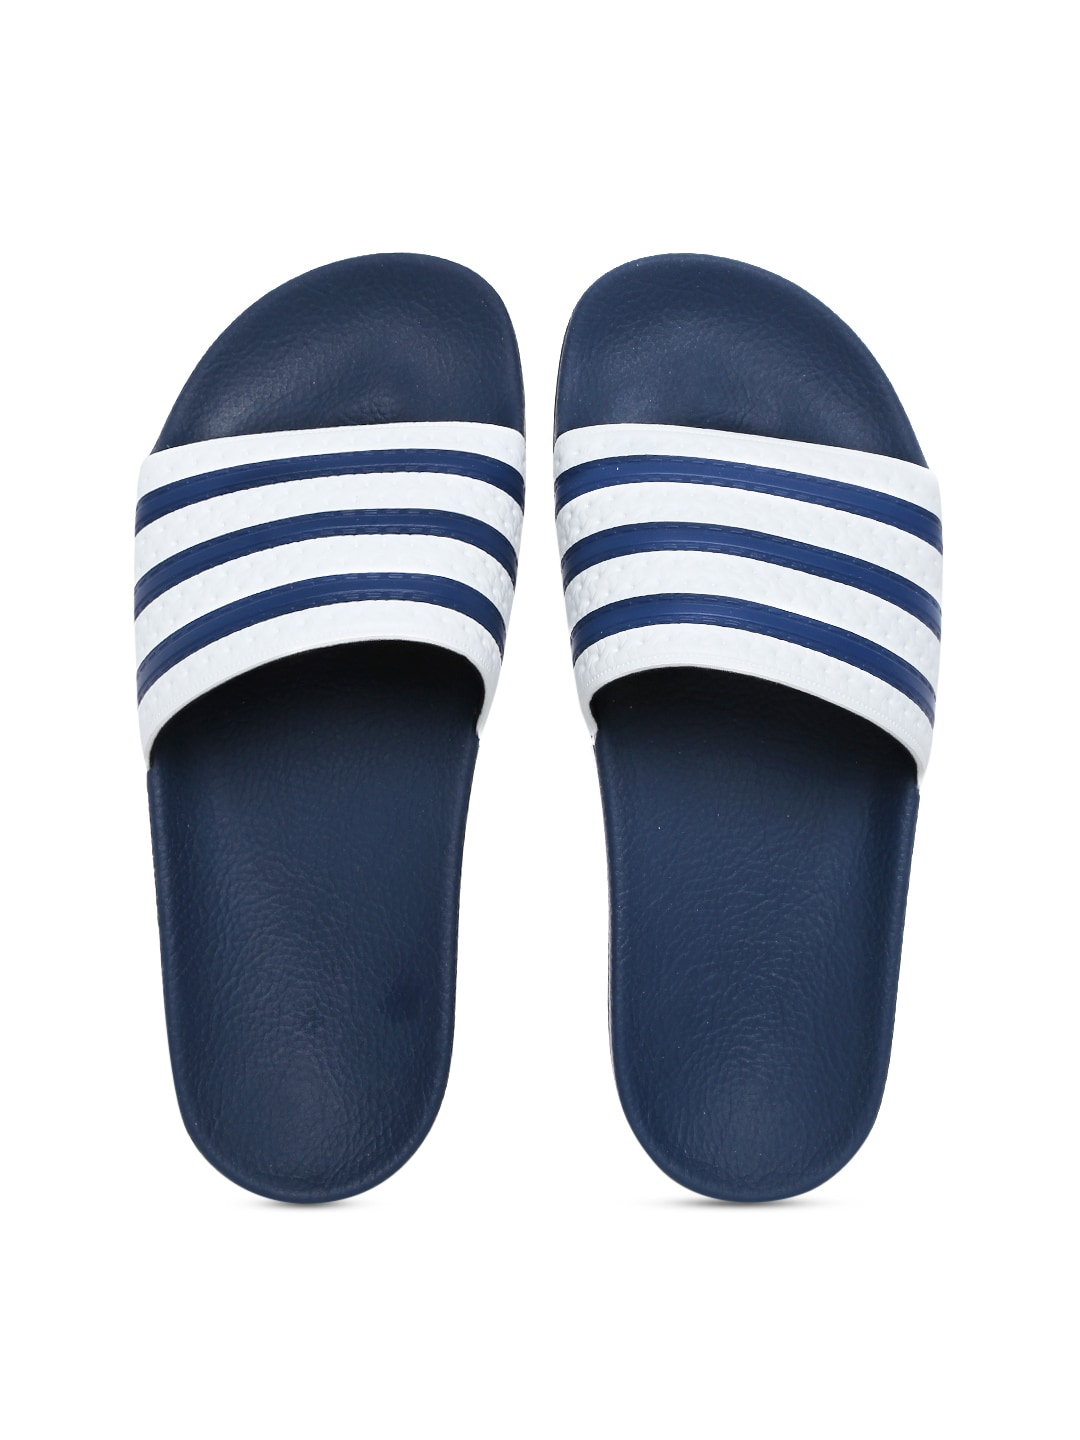 4075e55fff3d Adidas Originals Flip Flops - Buy Adidas Originals Flip Flops online in  India